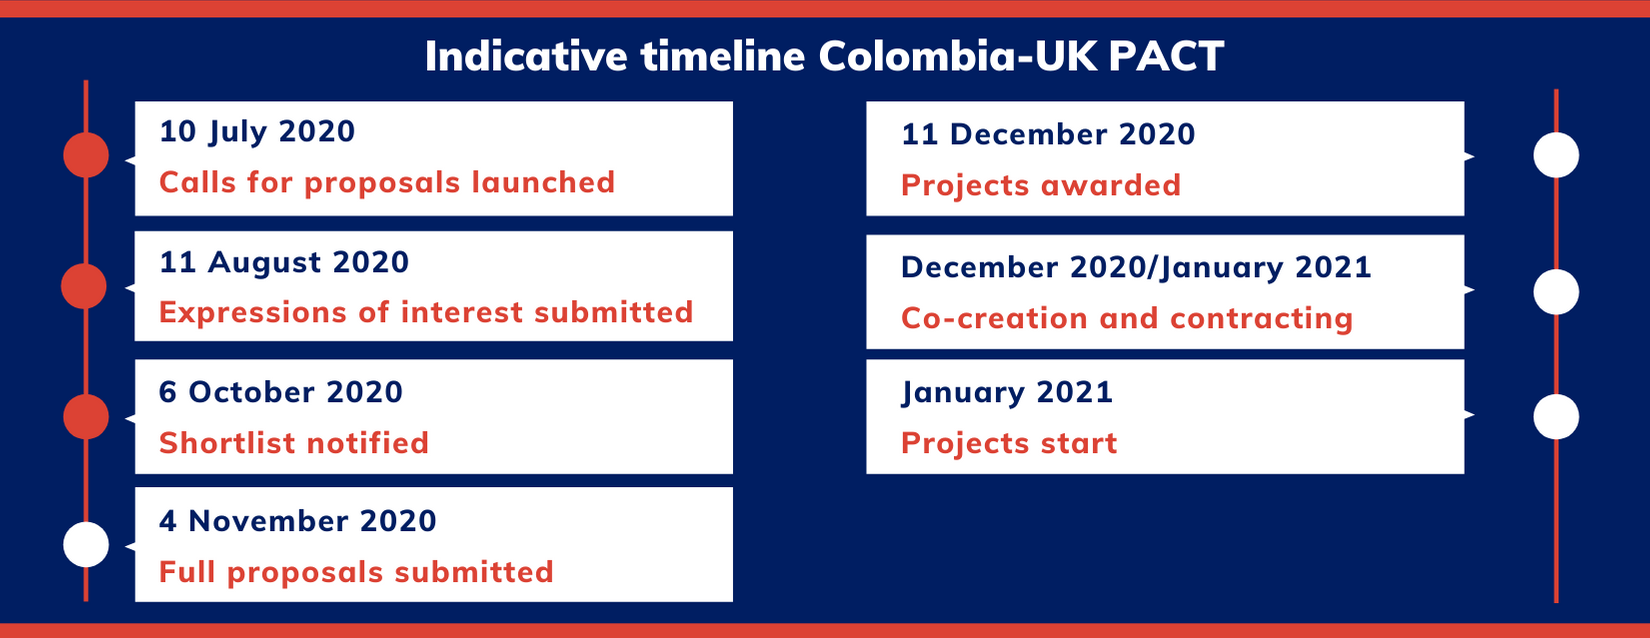 CP - CO timeline